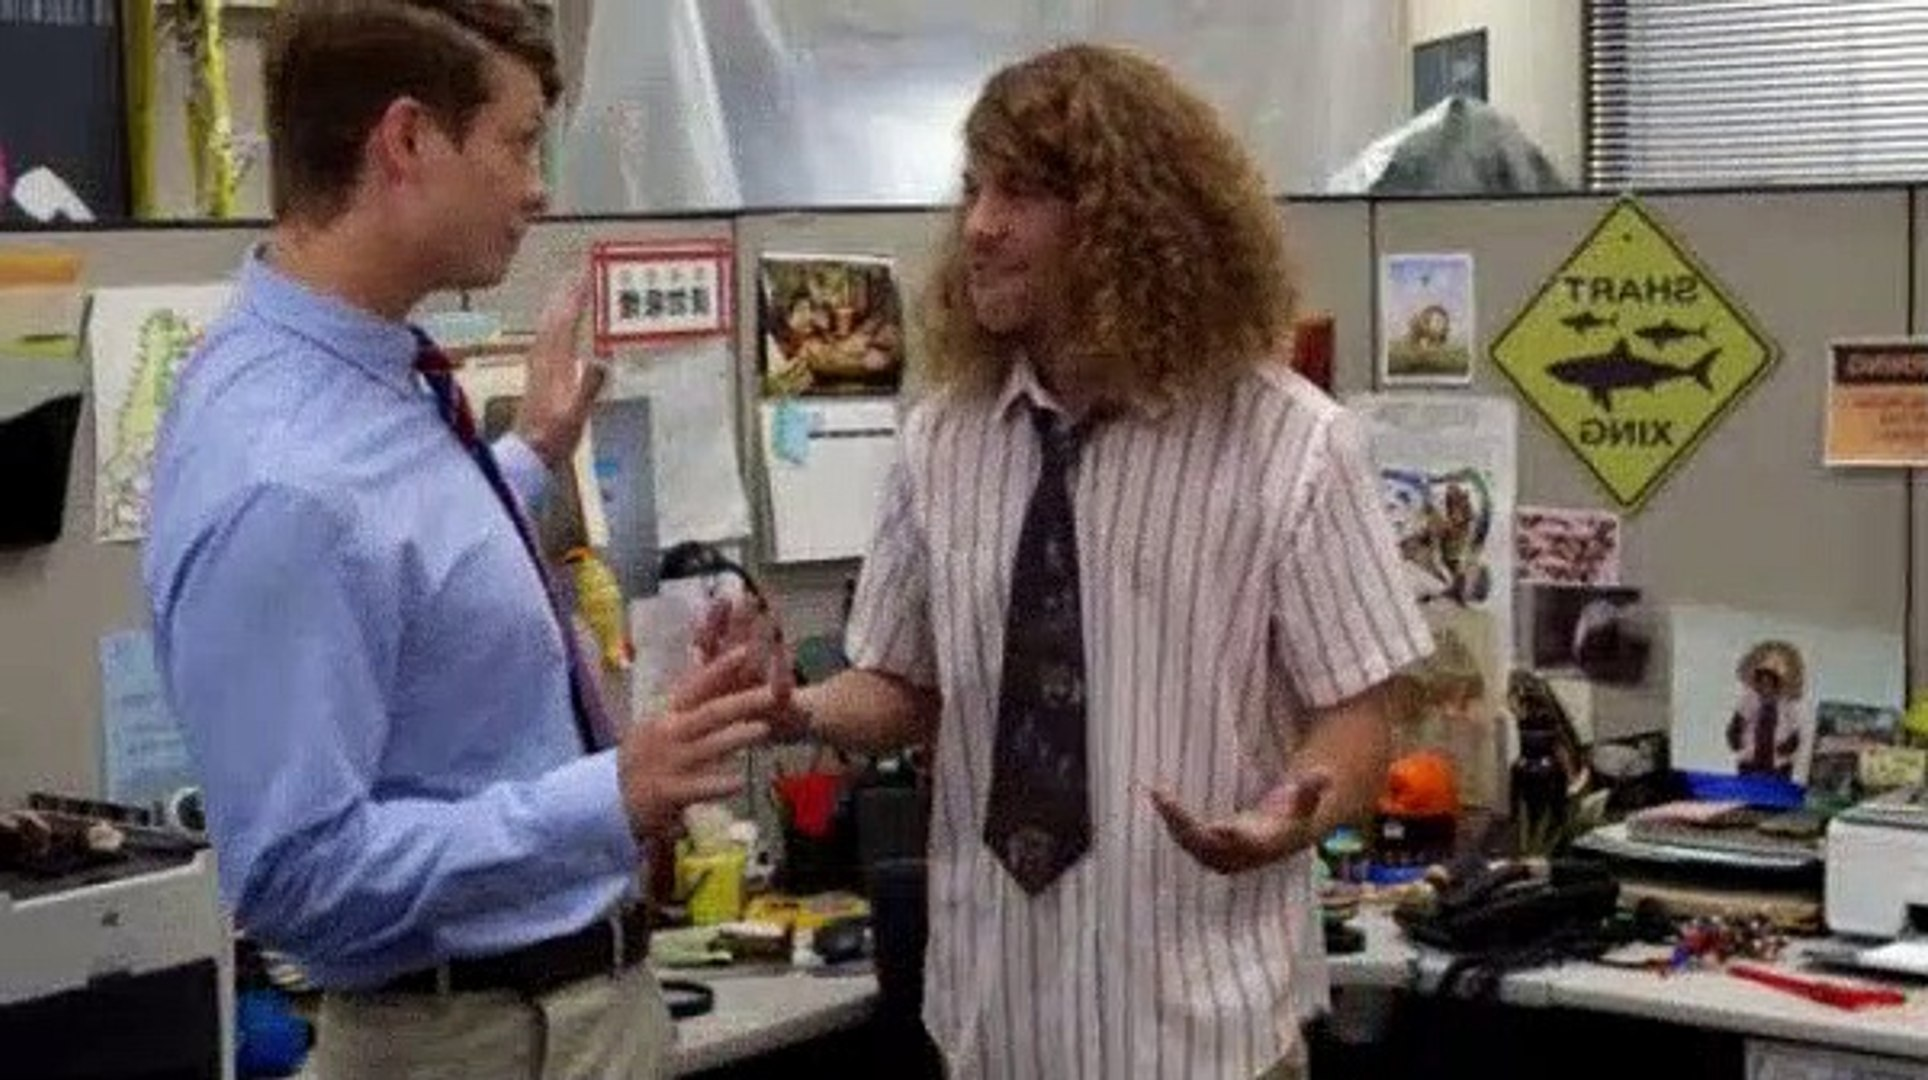 Workaholics S03E12 - A TelAmerican Horror Story